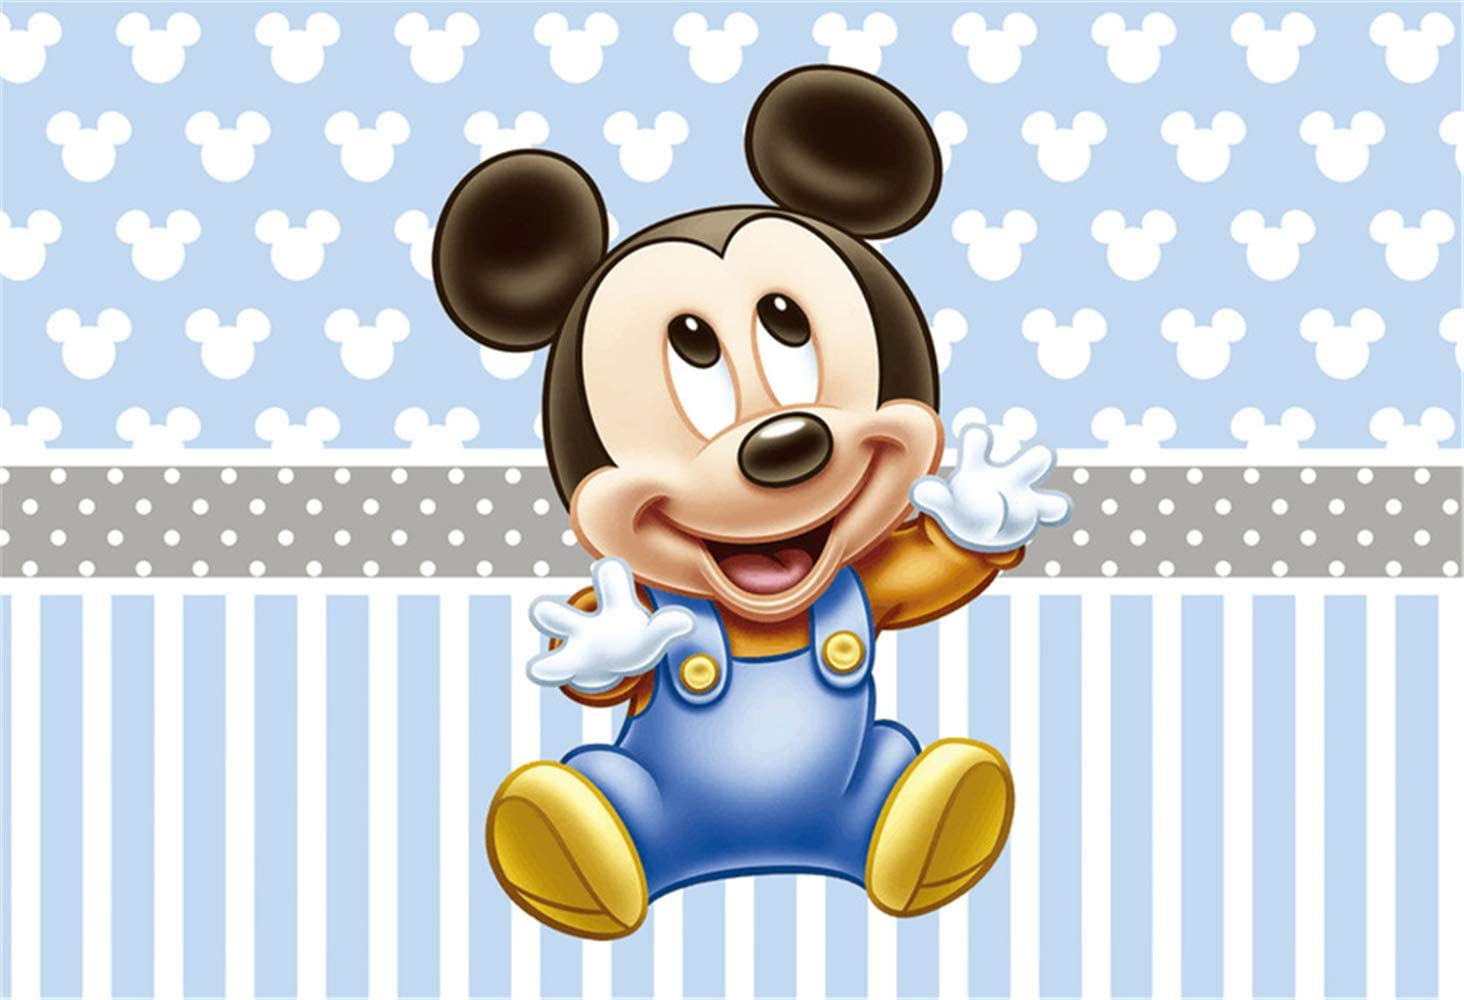 Amazon Com Mickey Mouse Step And Repeat Background 7x5 Light Blue Photo Backdrop For Boy 1st Birthday Party Grey Banner Customized Kids Studio Backgrounds Props Camera Photo